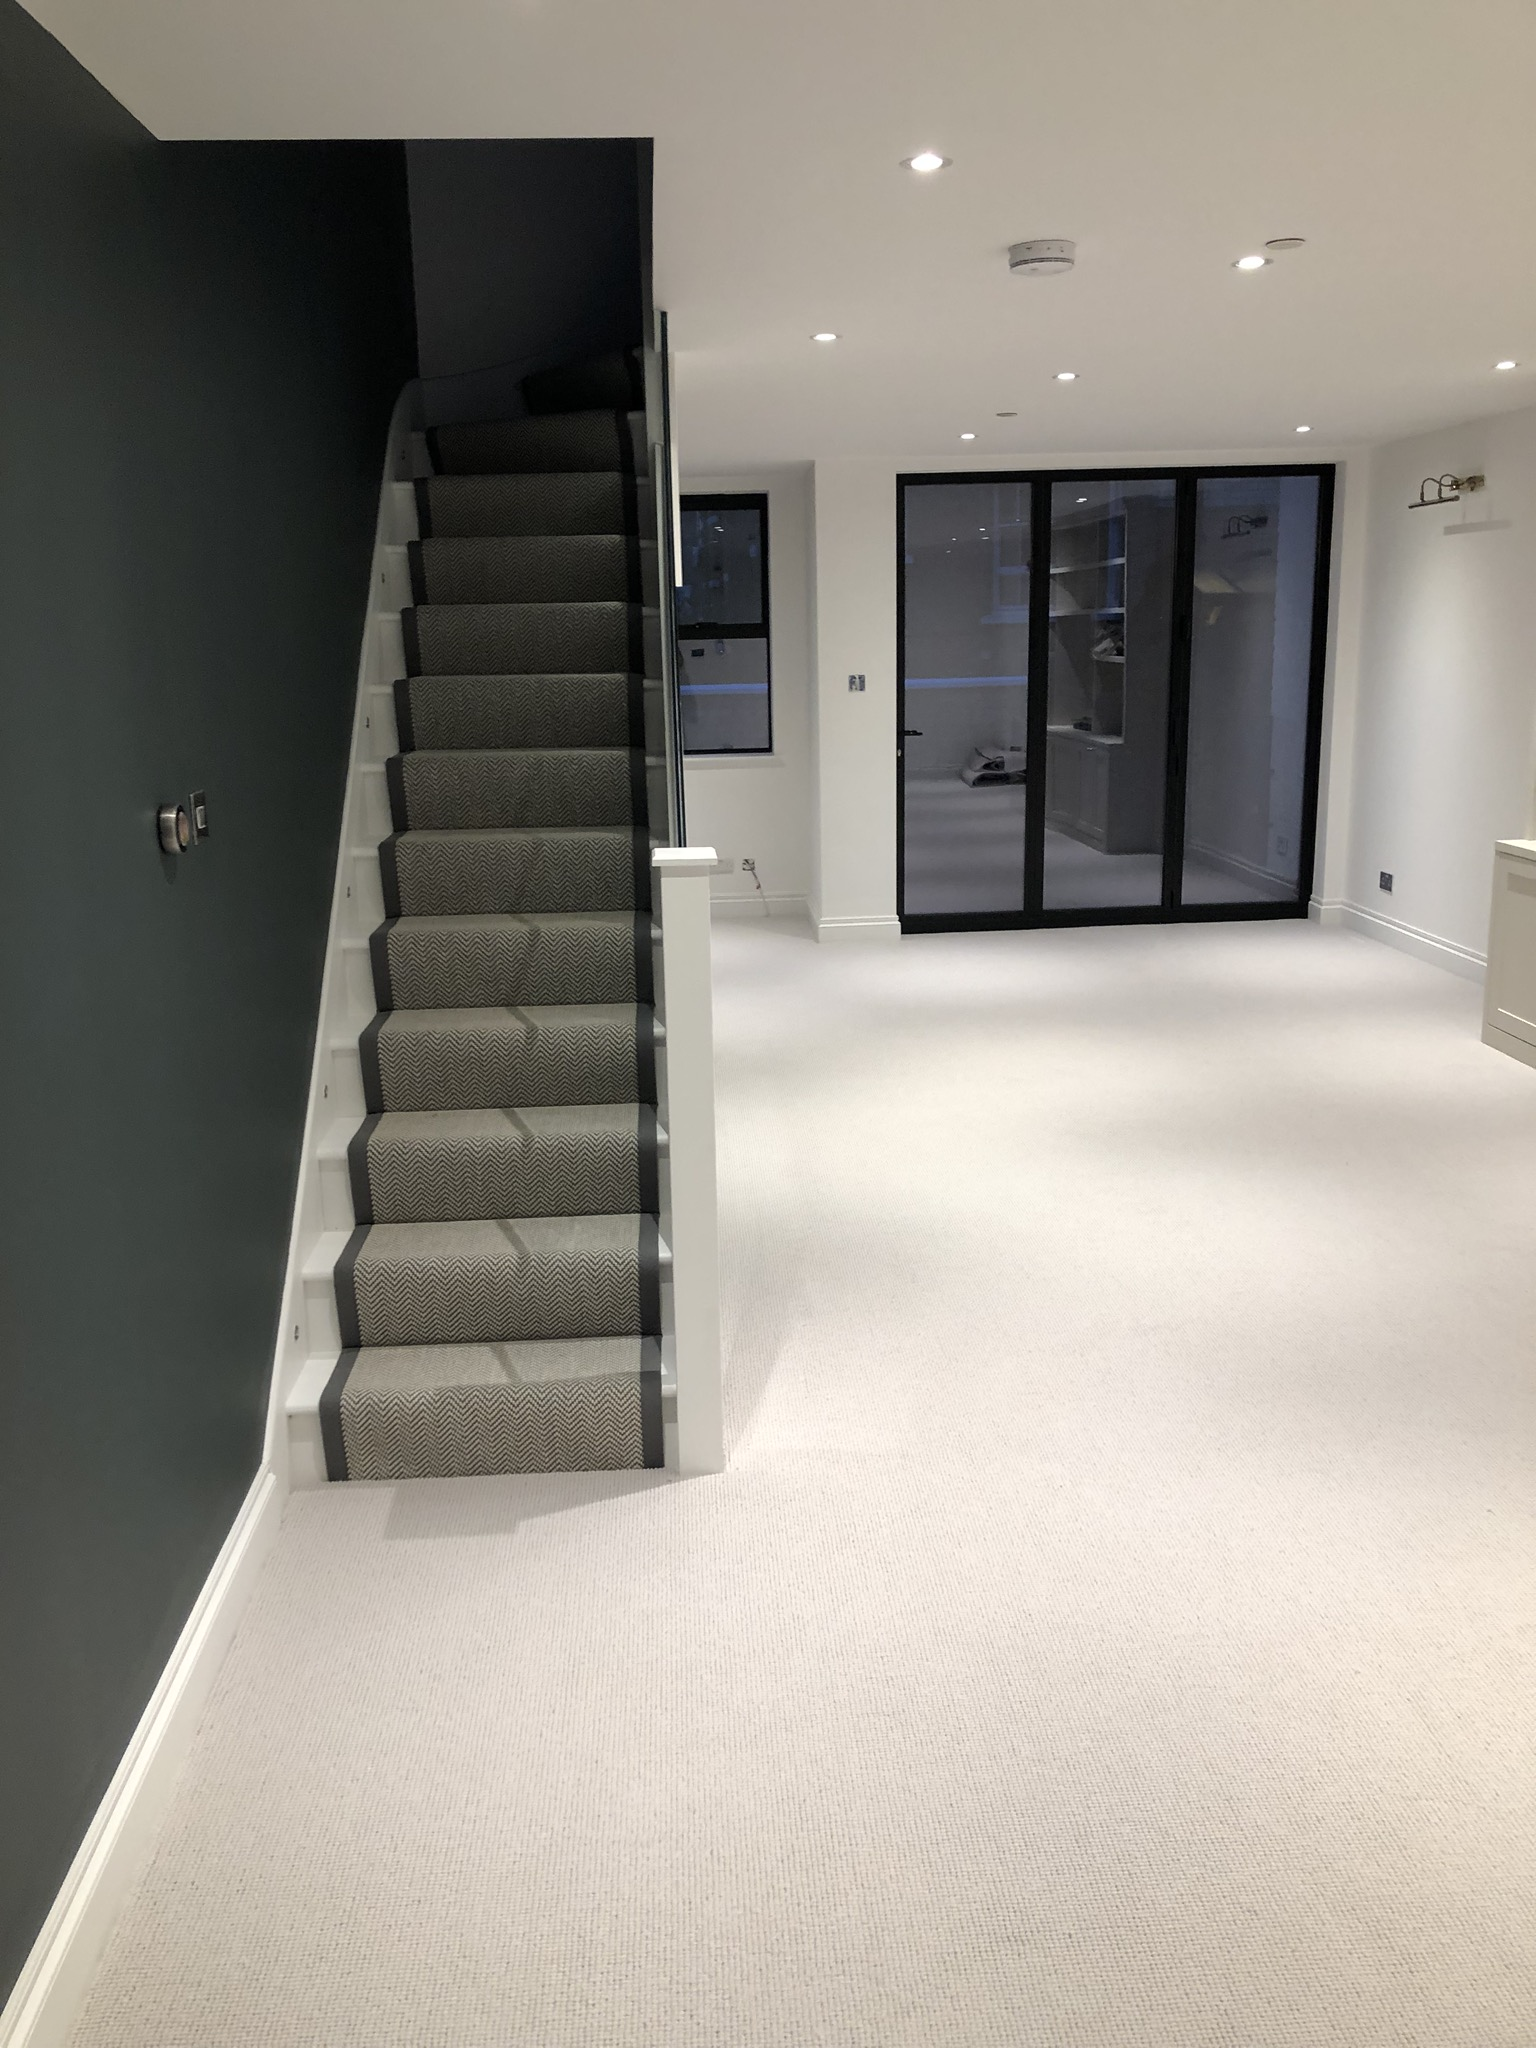 Fibre Flatweave Classic Herringbone Dapple carpet installed Battersea 1